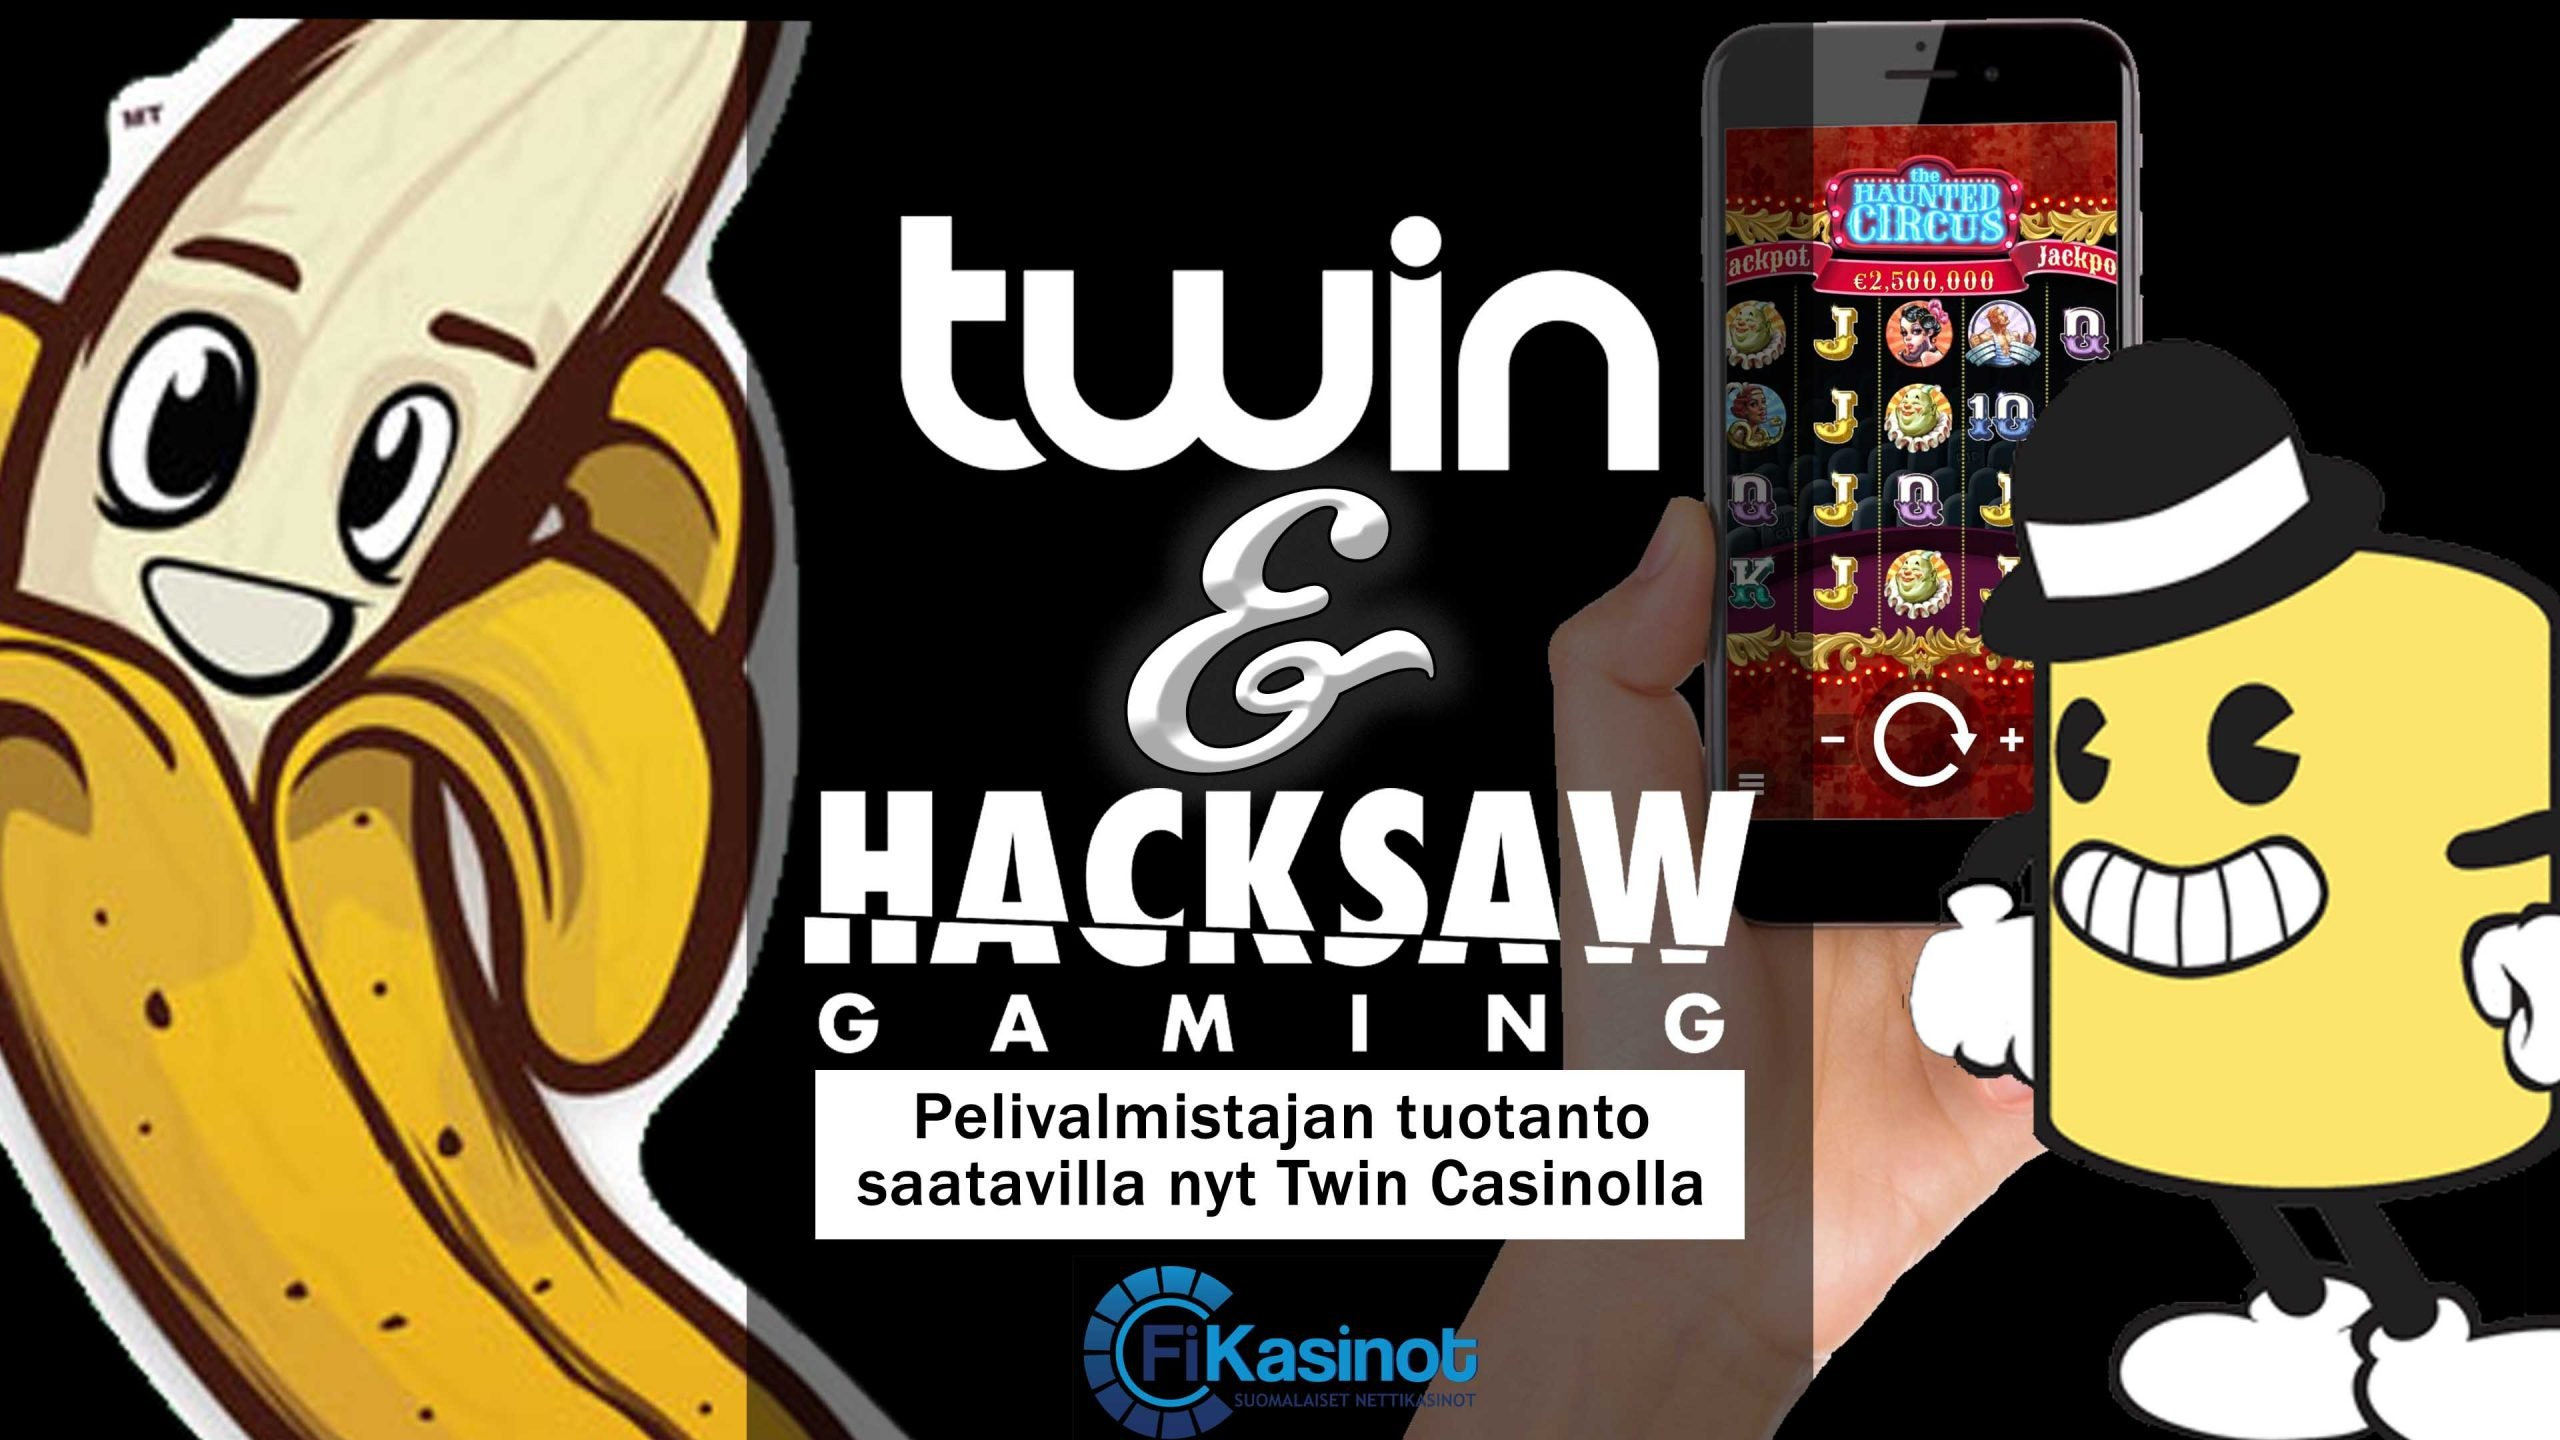 Hacksaw Gamingin pelit Twin Casinolla